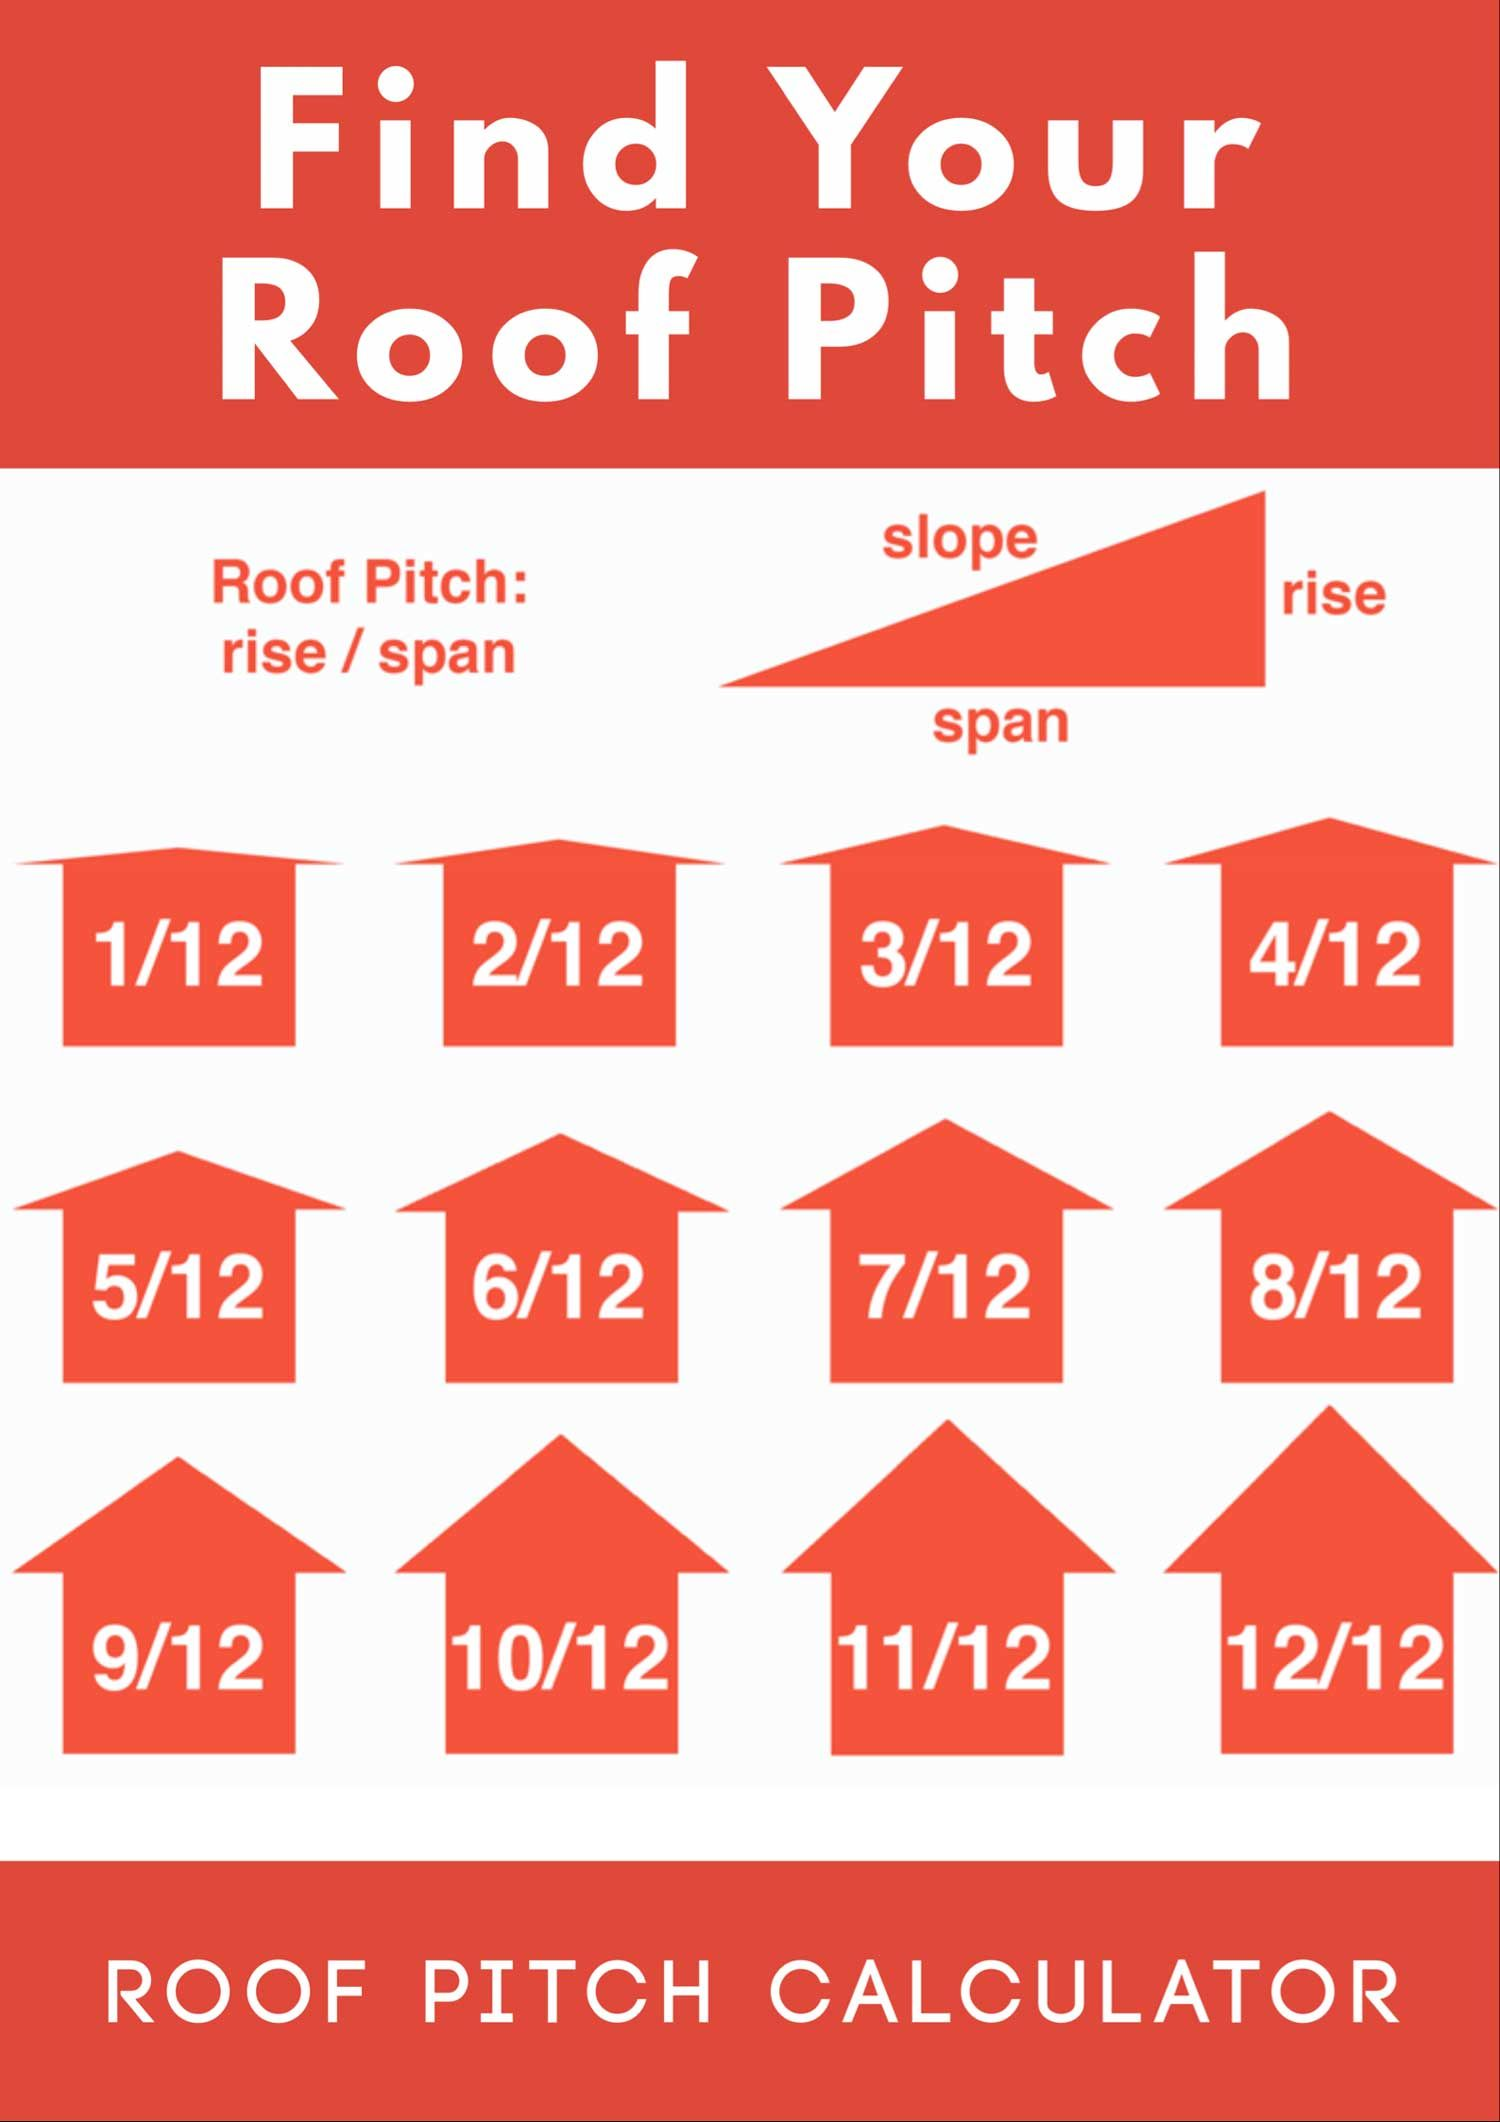 Roof Pitch Calculator Roof truss design, Porch roof